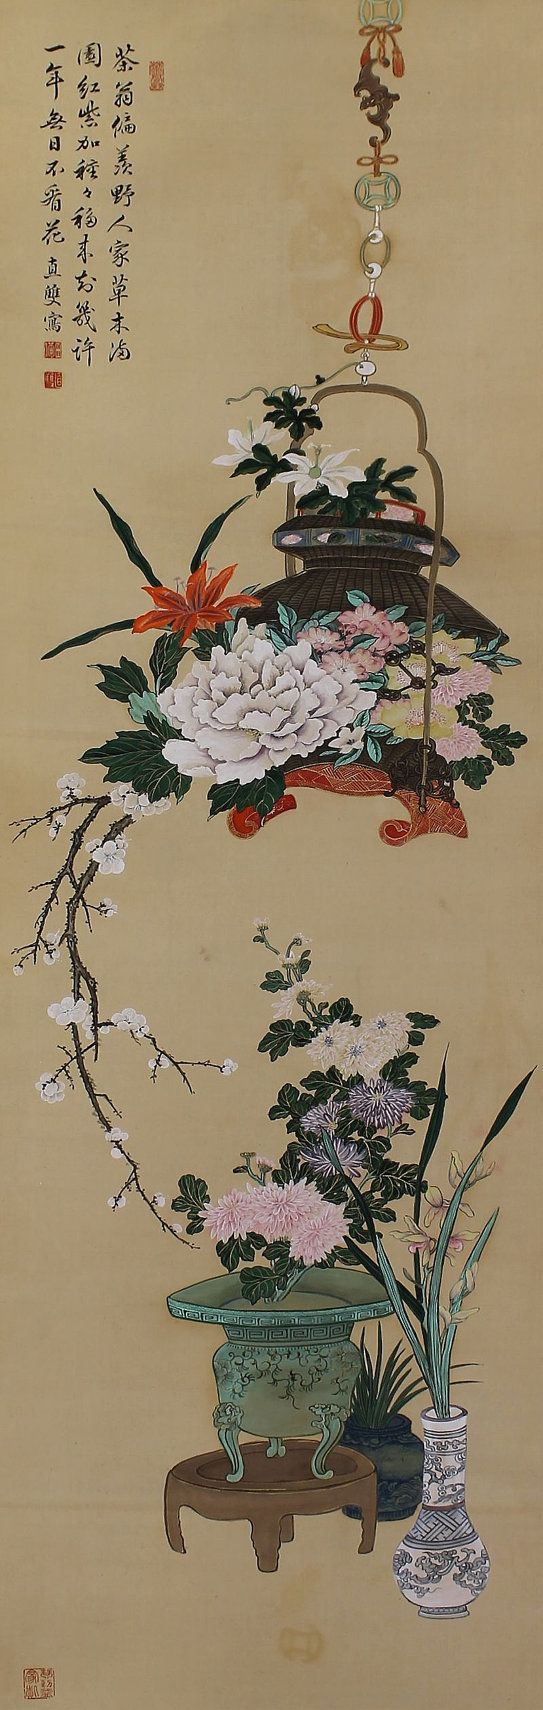 Flower Basket by Tanomura Chokuso. Japanese Hanging scroll painting, Kakejiku.